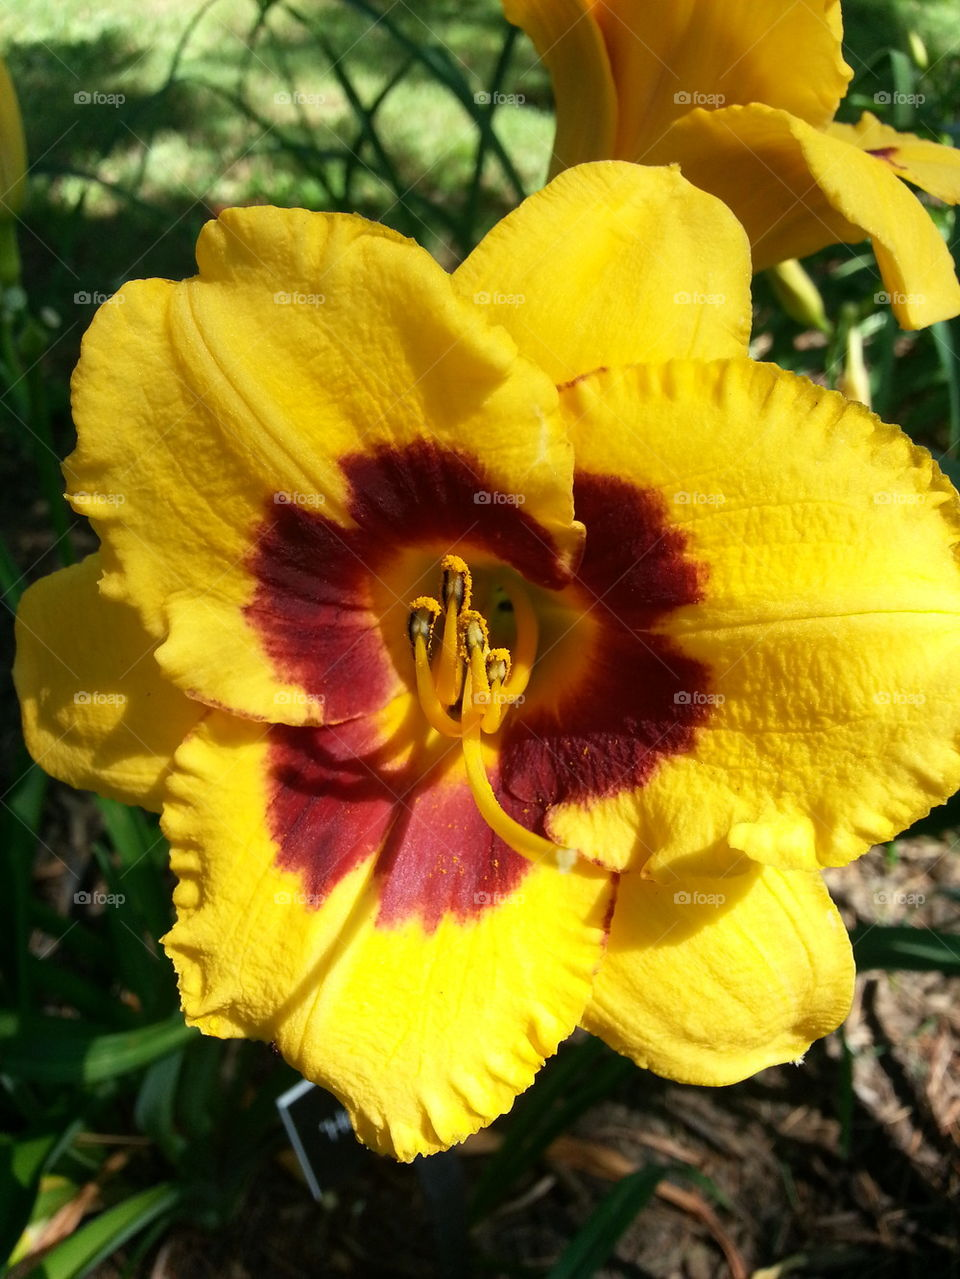 Foap Yellow Day Lily With Red Center Stock Photo By Fishyinsects